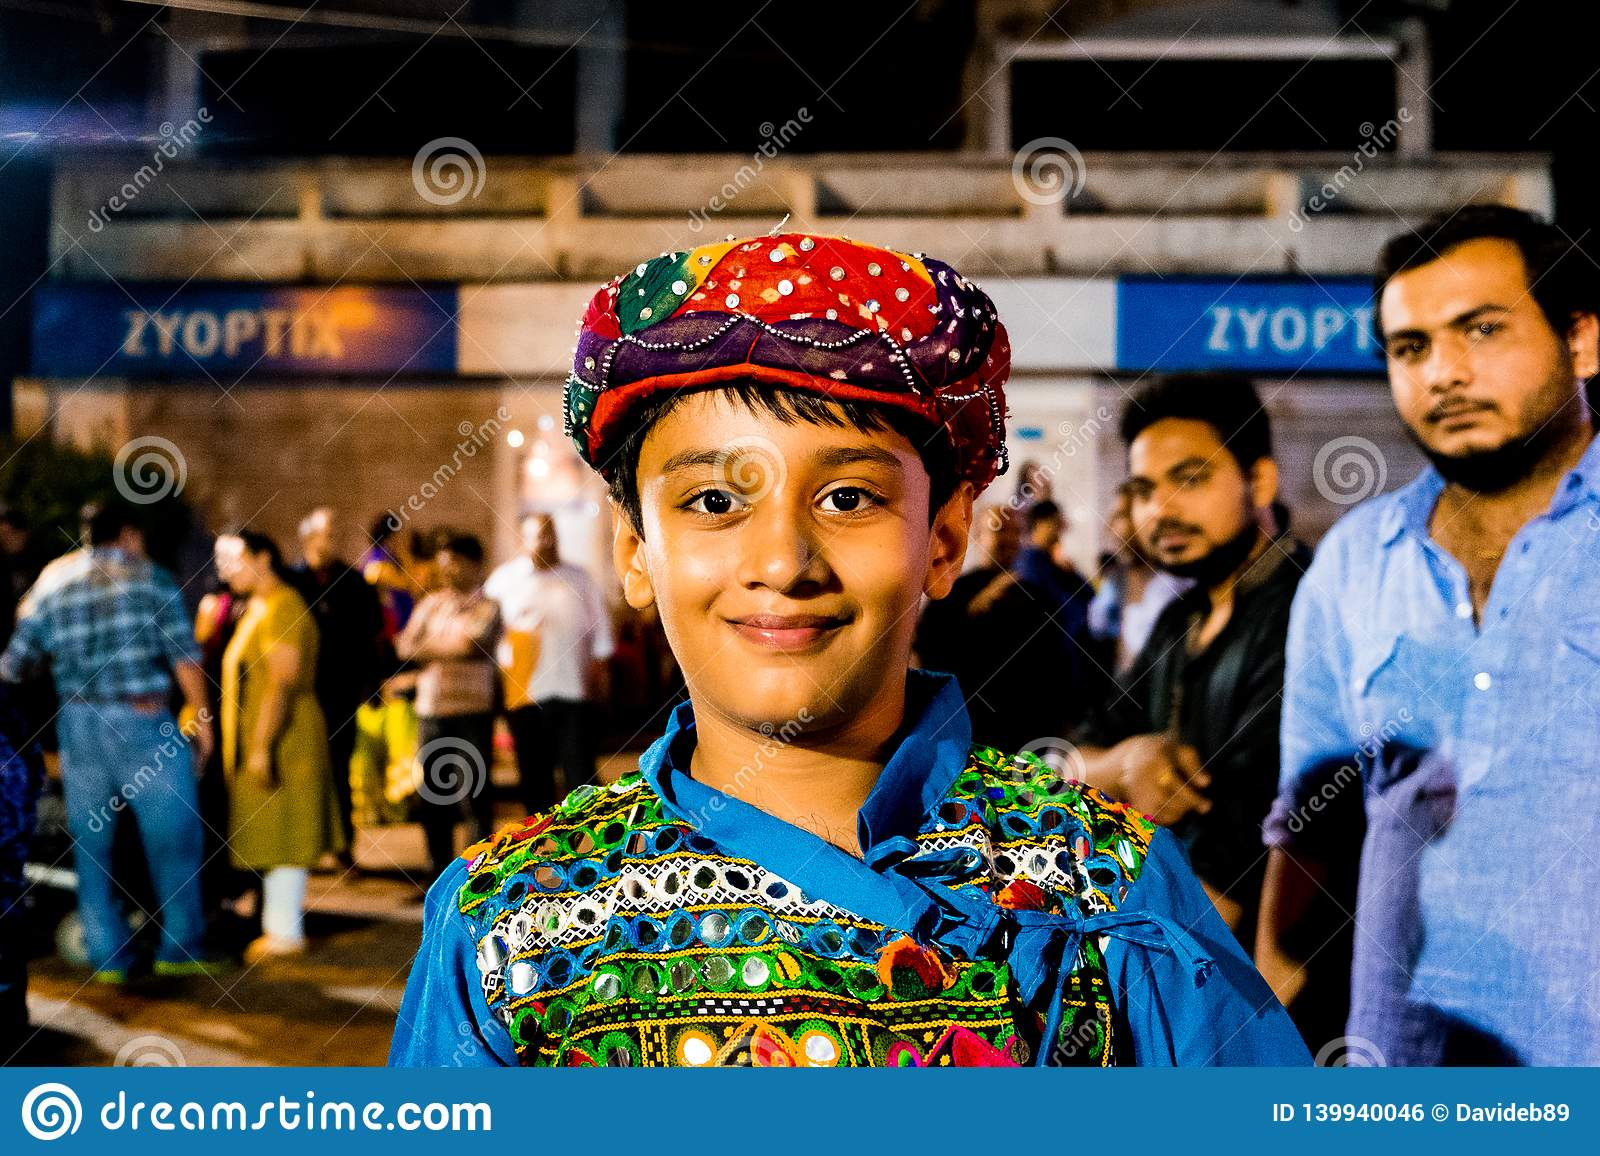 796e5c37ea Indian Boy Traditional Dress Stock Images - Download 1,095 Royalty Free  Photos